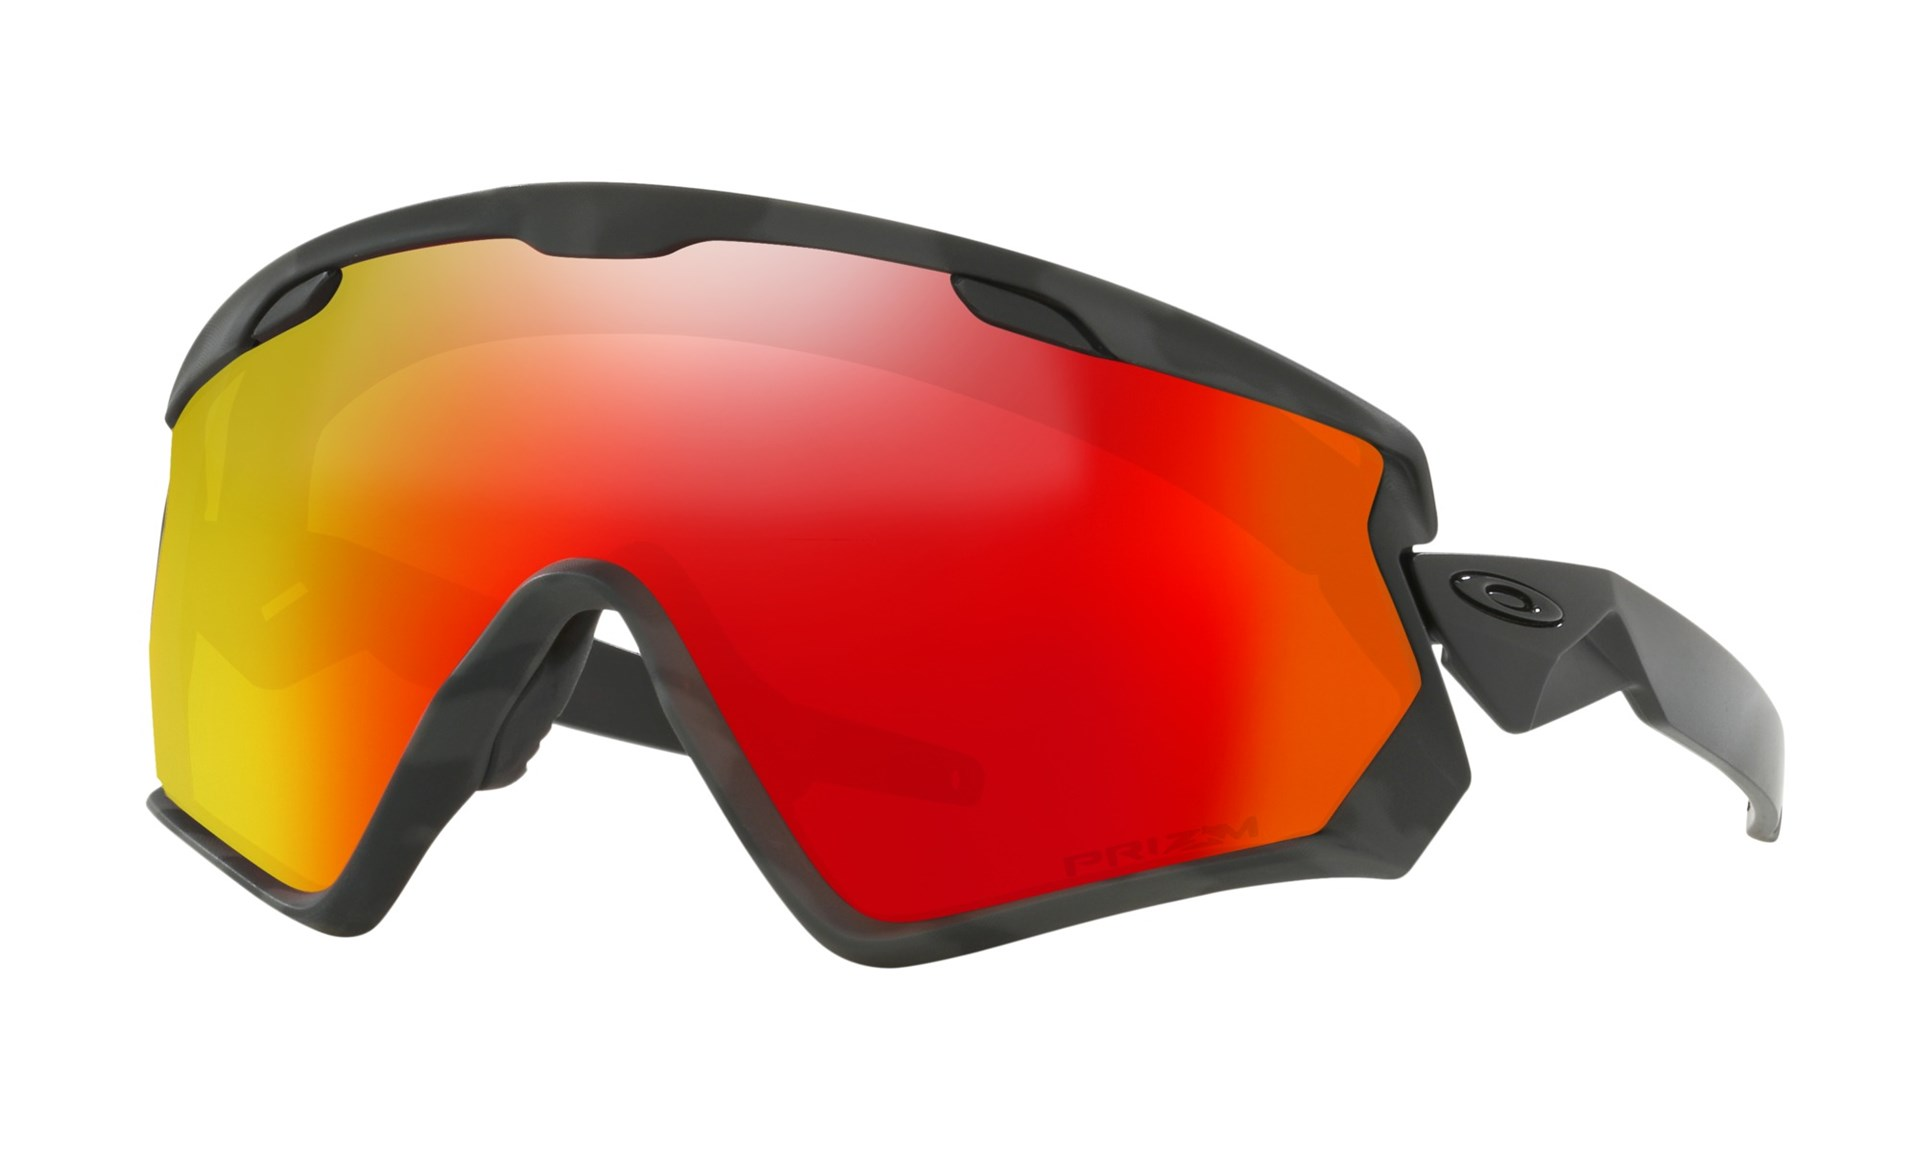 93e923fe01a7 Bilde  Oakley WIND JACKET 2.0 PRIZM™ NIGHT CAMO COLLECTION PRIZM SNOW TORCH  IRIDIUM ...